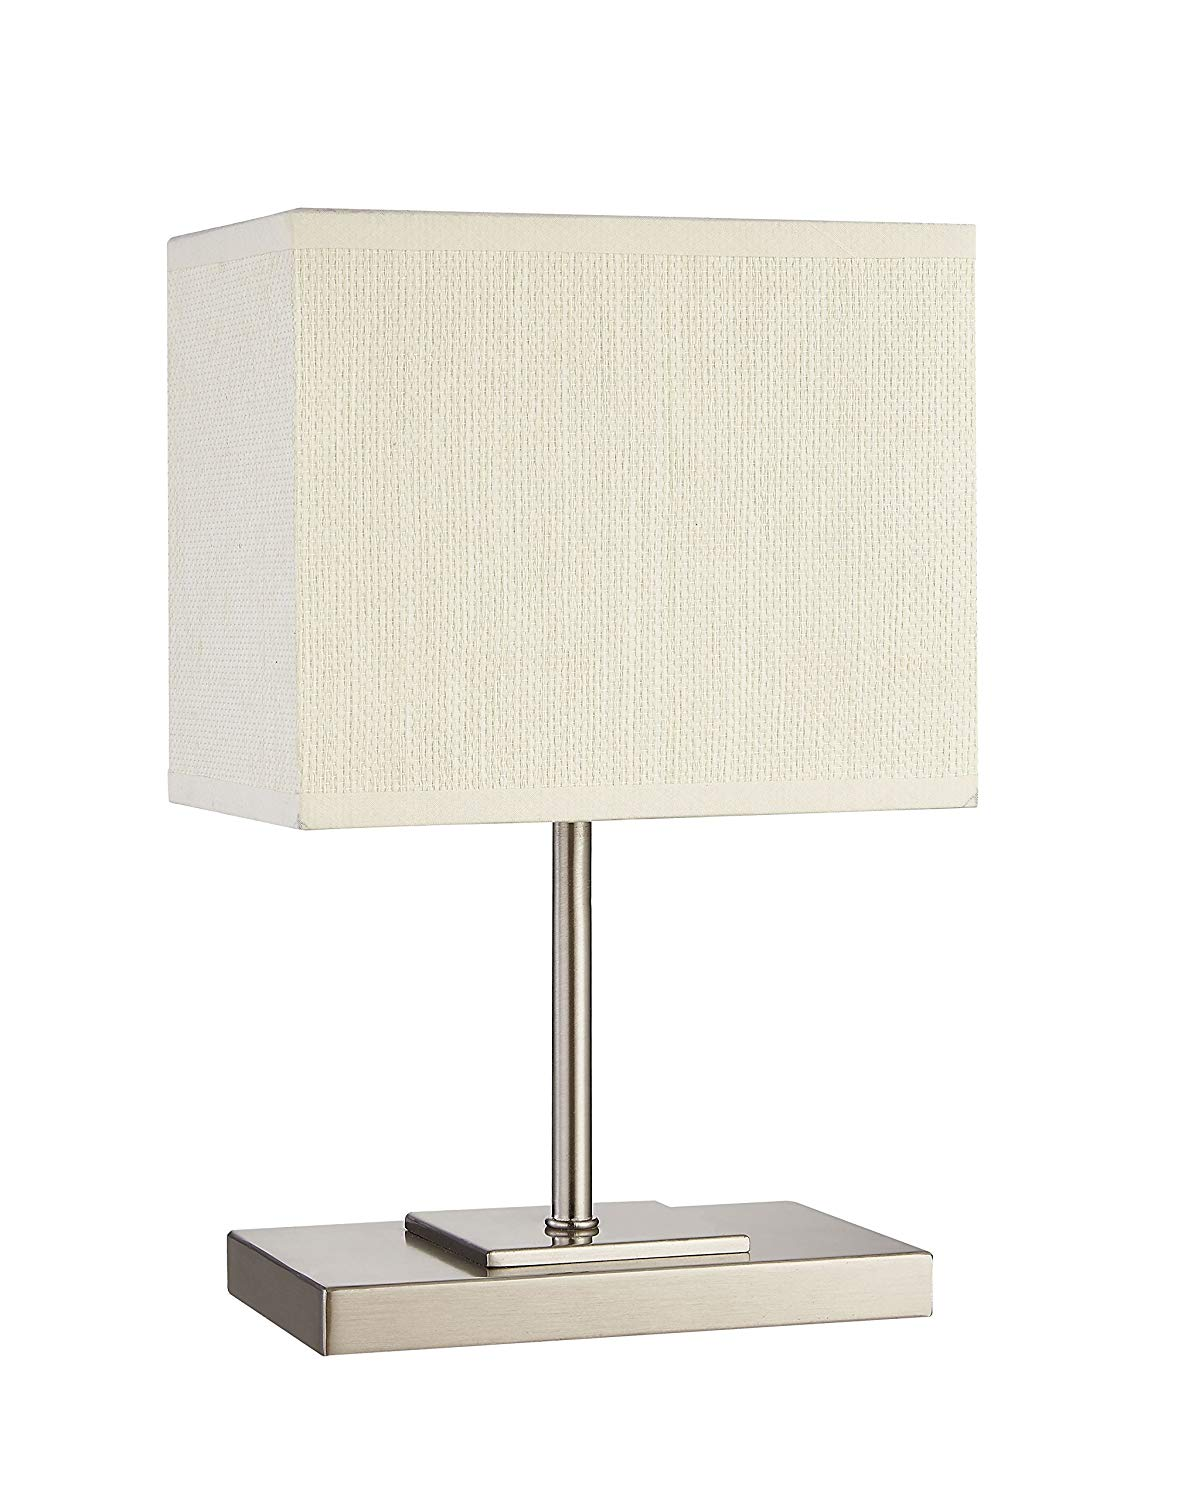 Table Lamp, DILI HOME Bedside Desk Lamp With Paper Fabric Shade and Metal base for Bedroom, Dresser, Living Room, Baby Room, College Dorm, Coffee Table, Bookcase (rectangular)